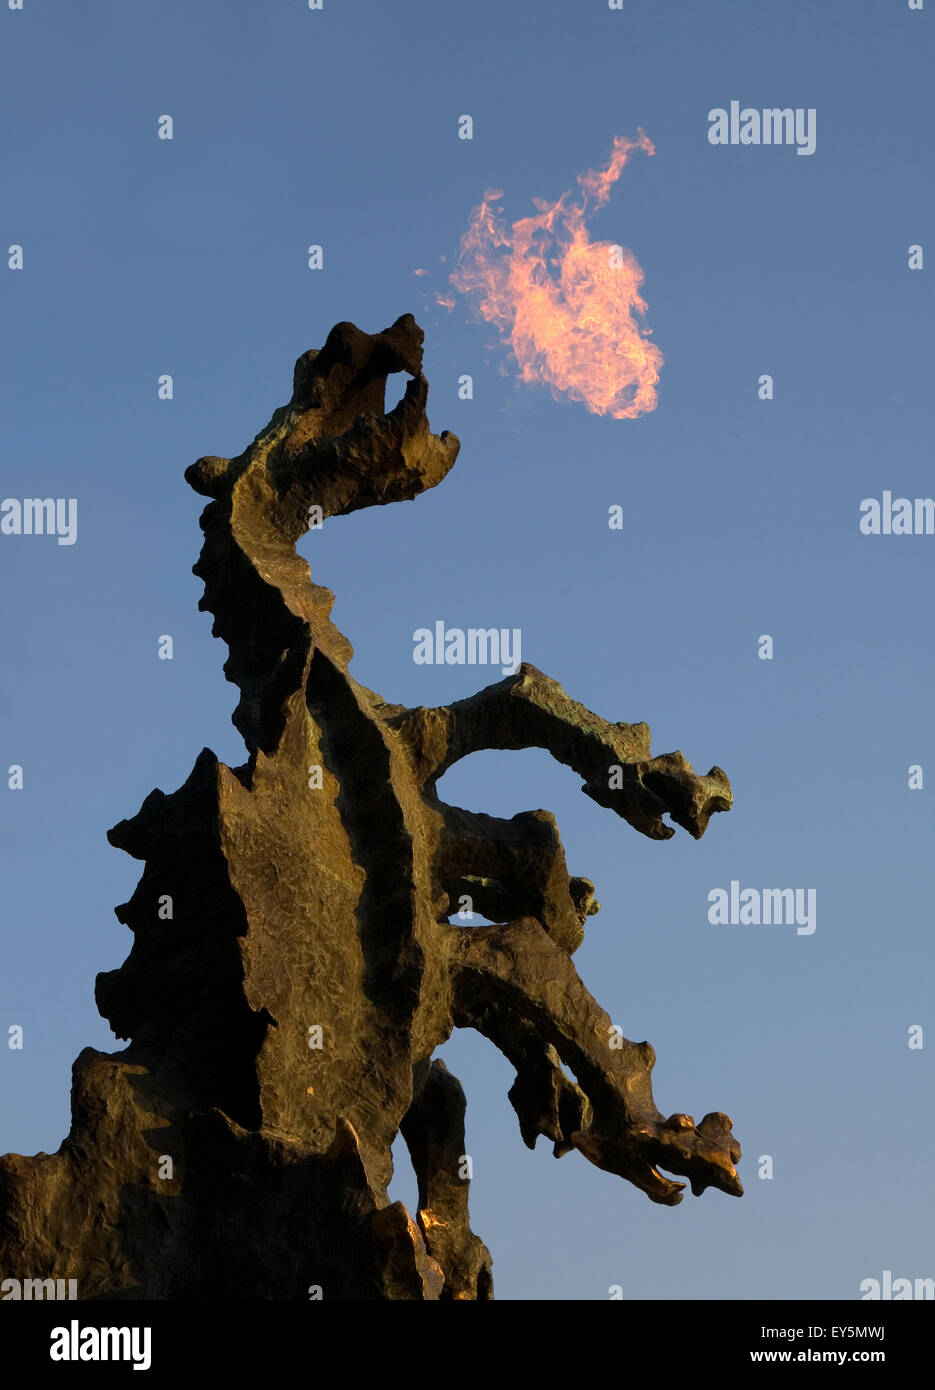 Fire Breathing Dragon Imágenes De Stock & Fire Breathing Dragon ...